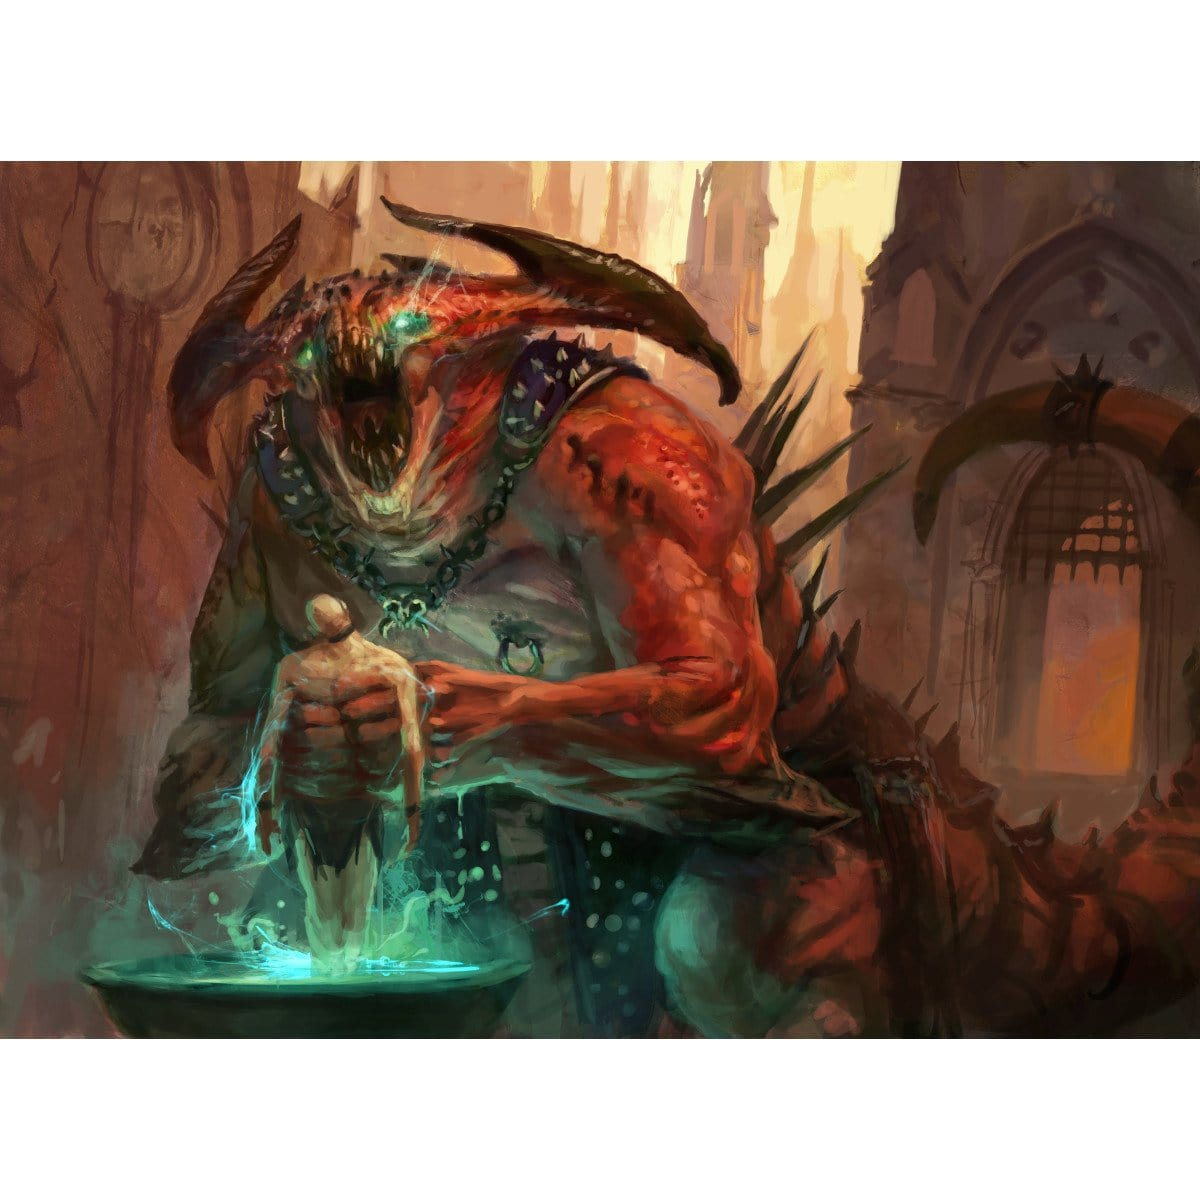 Sire of Insanity Print - Print - Original Magic Art - Accessories for Magic the Gathering and other card games